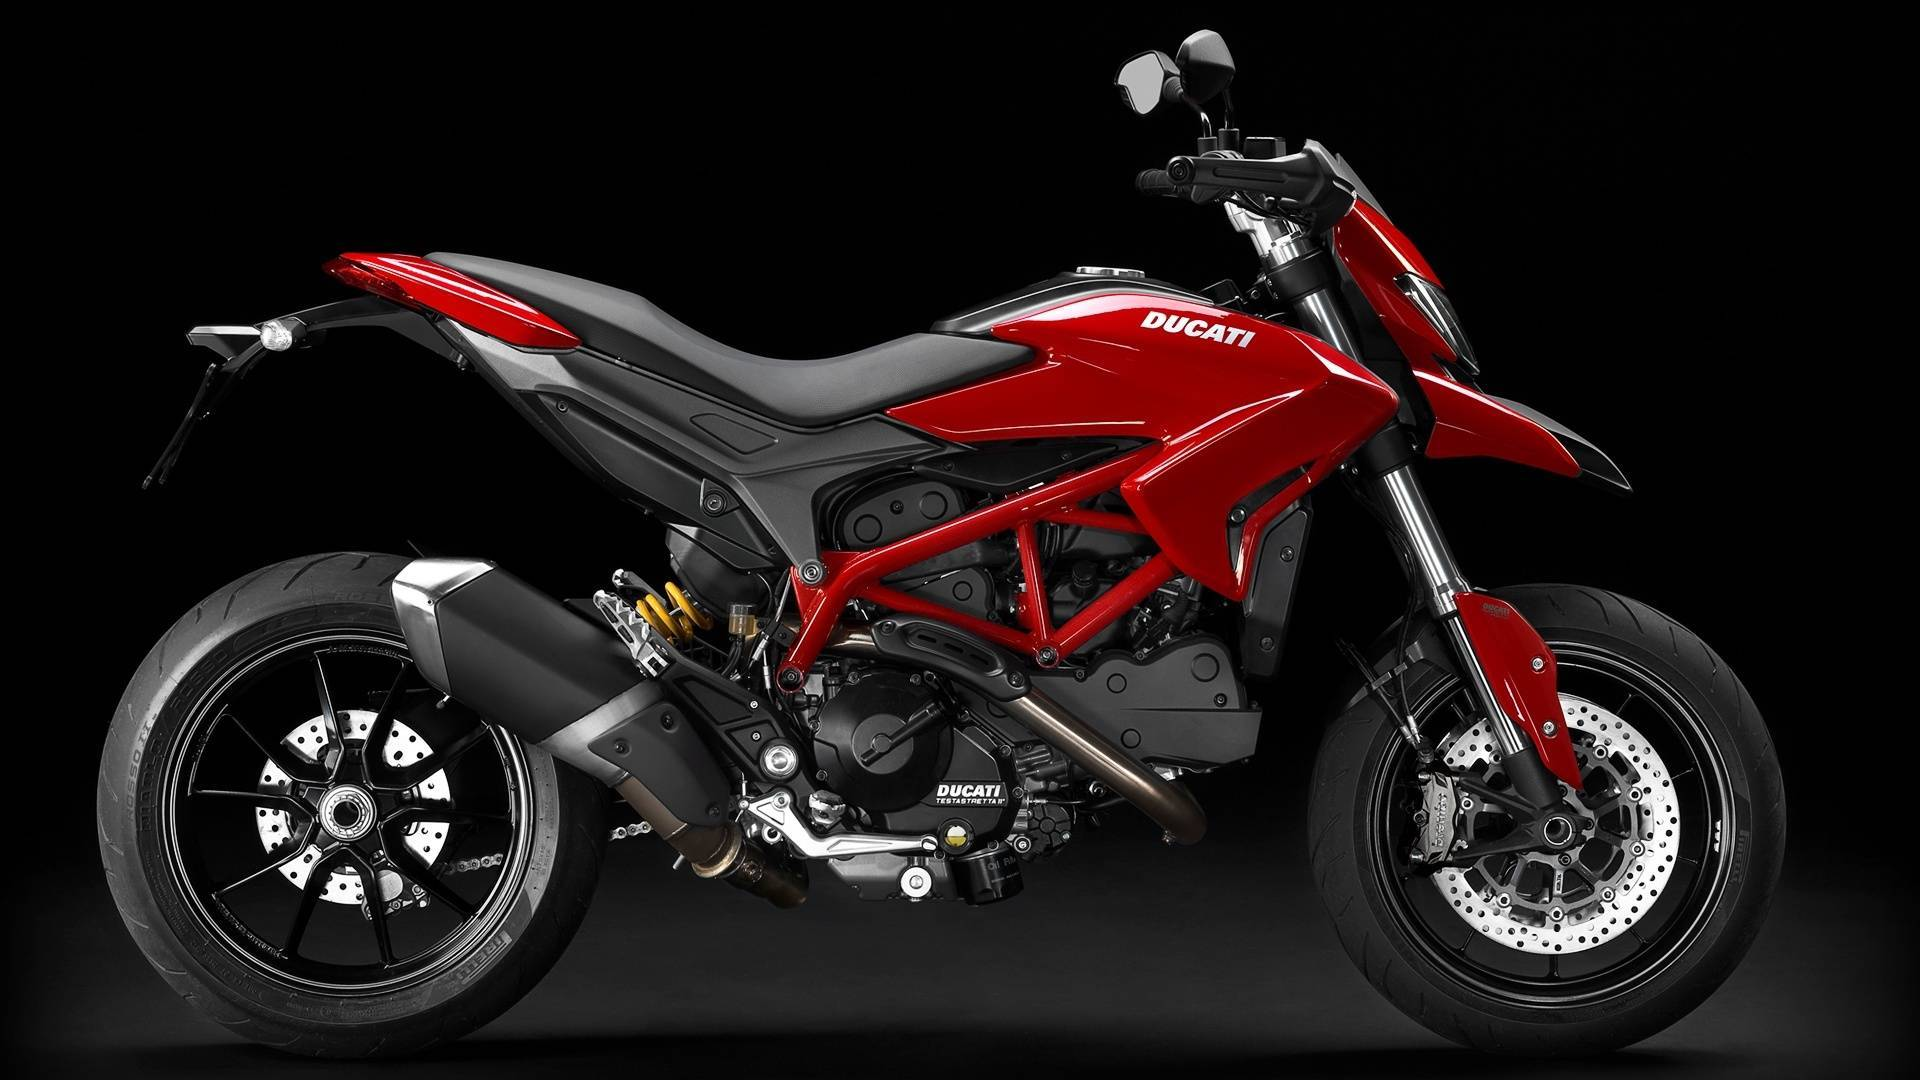 Ducati Cc Bike Price